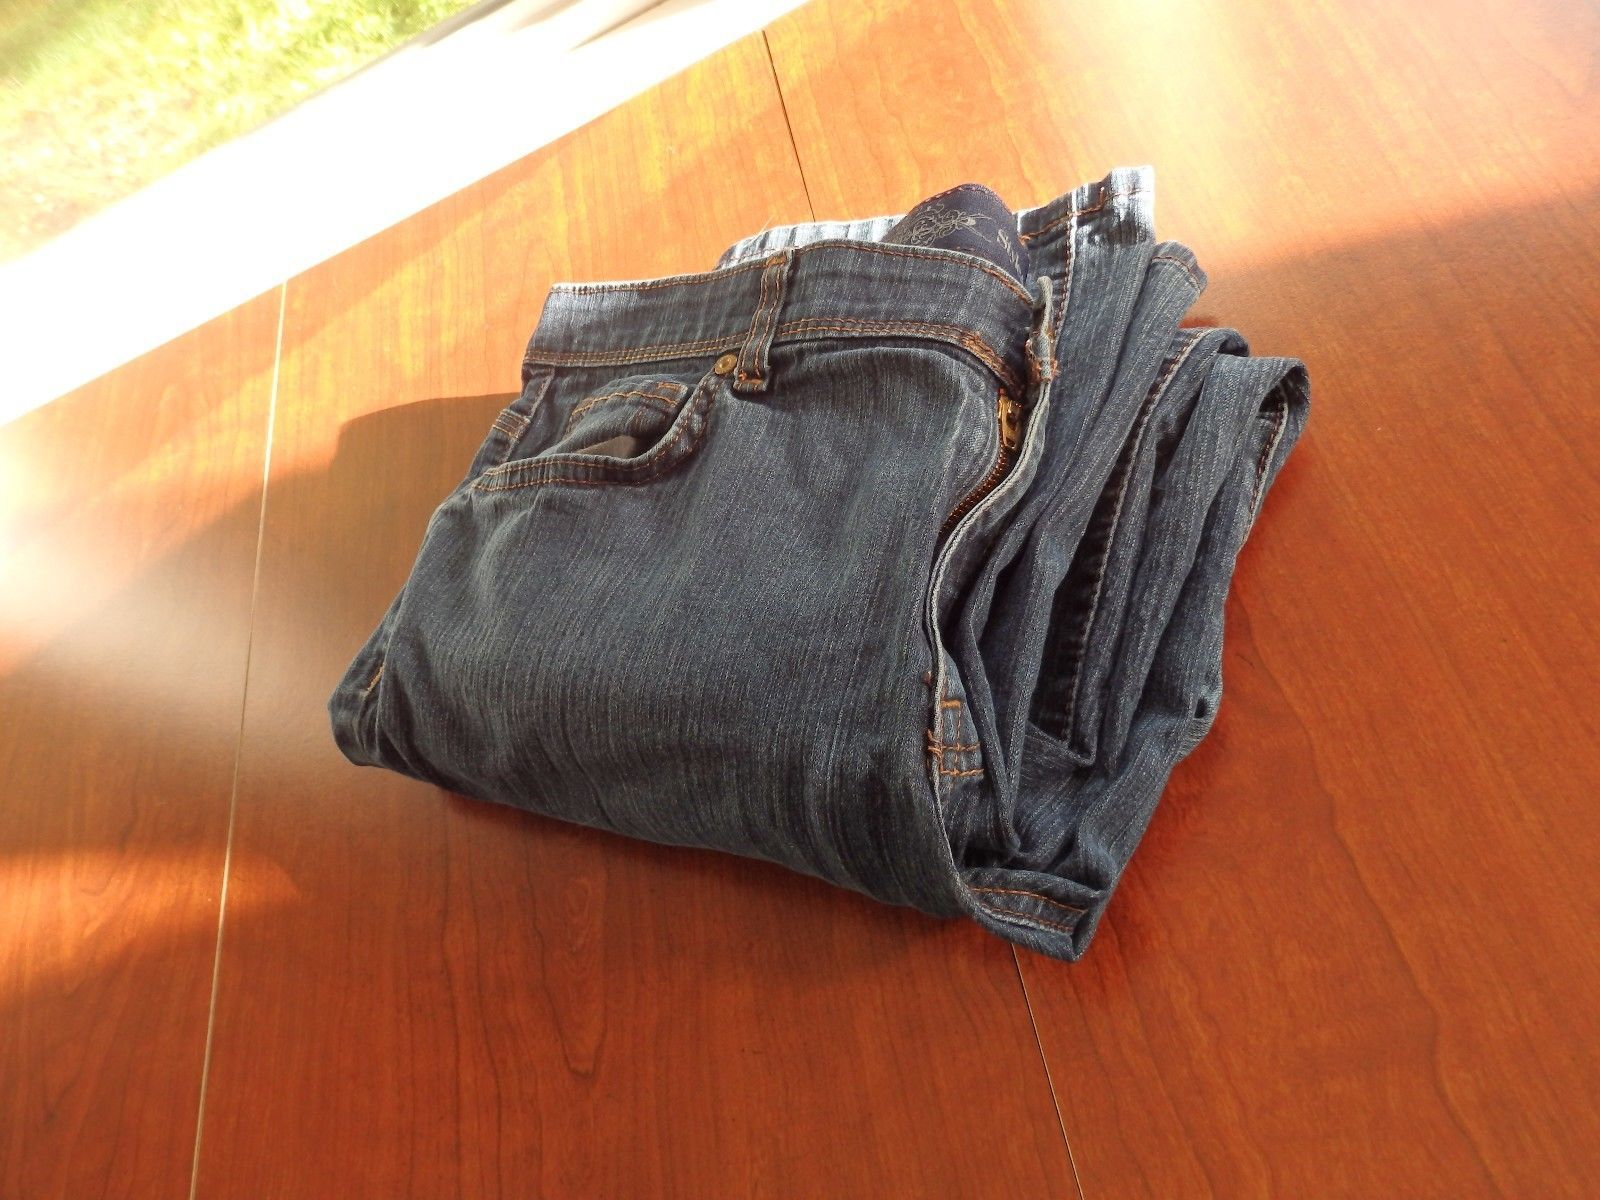 Primary image for Women's Old Navy Blue Denim Jeans Size 14 Regular Pants